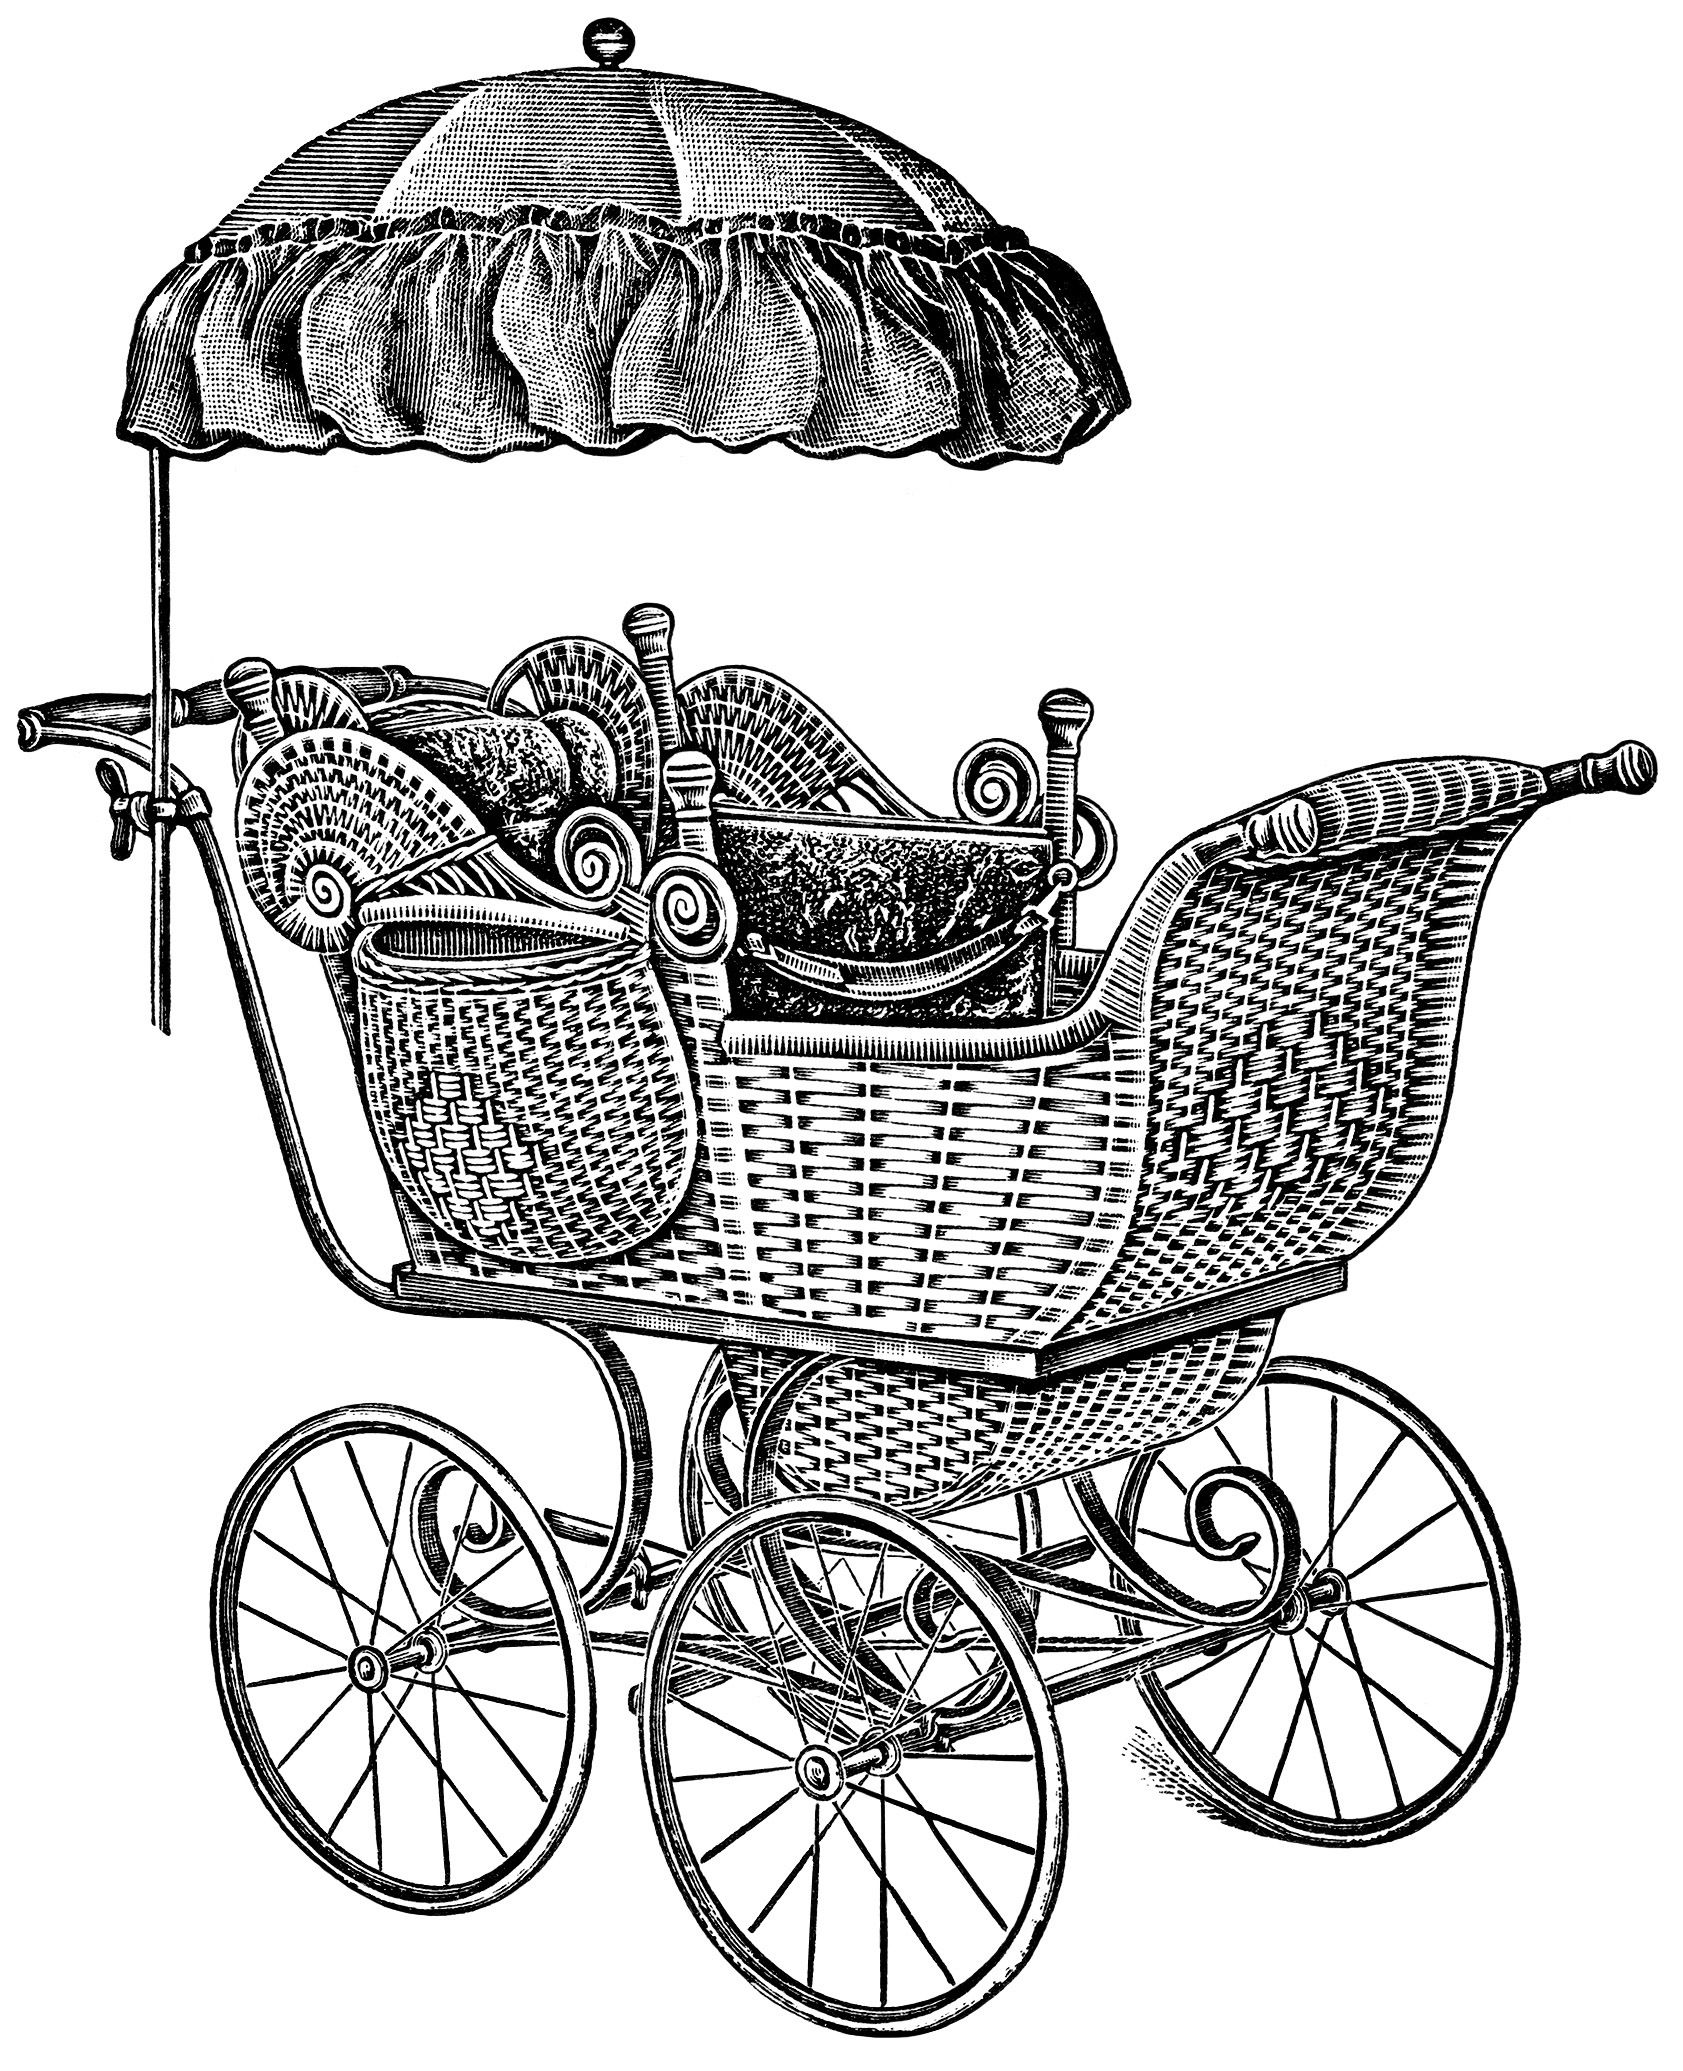 small resolution of old catalogue page vintage baby clip art antique baby carriage illustration free black and white clipart pram carriage graphic parasol covered baby